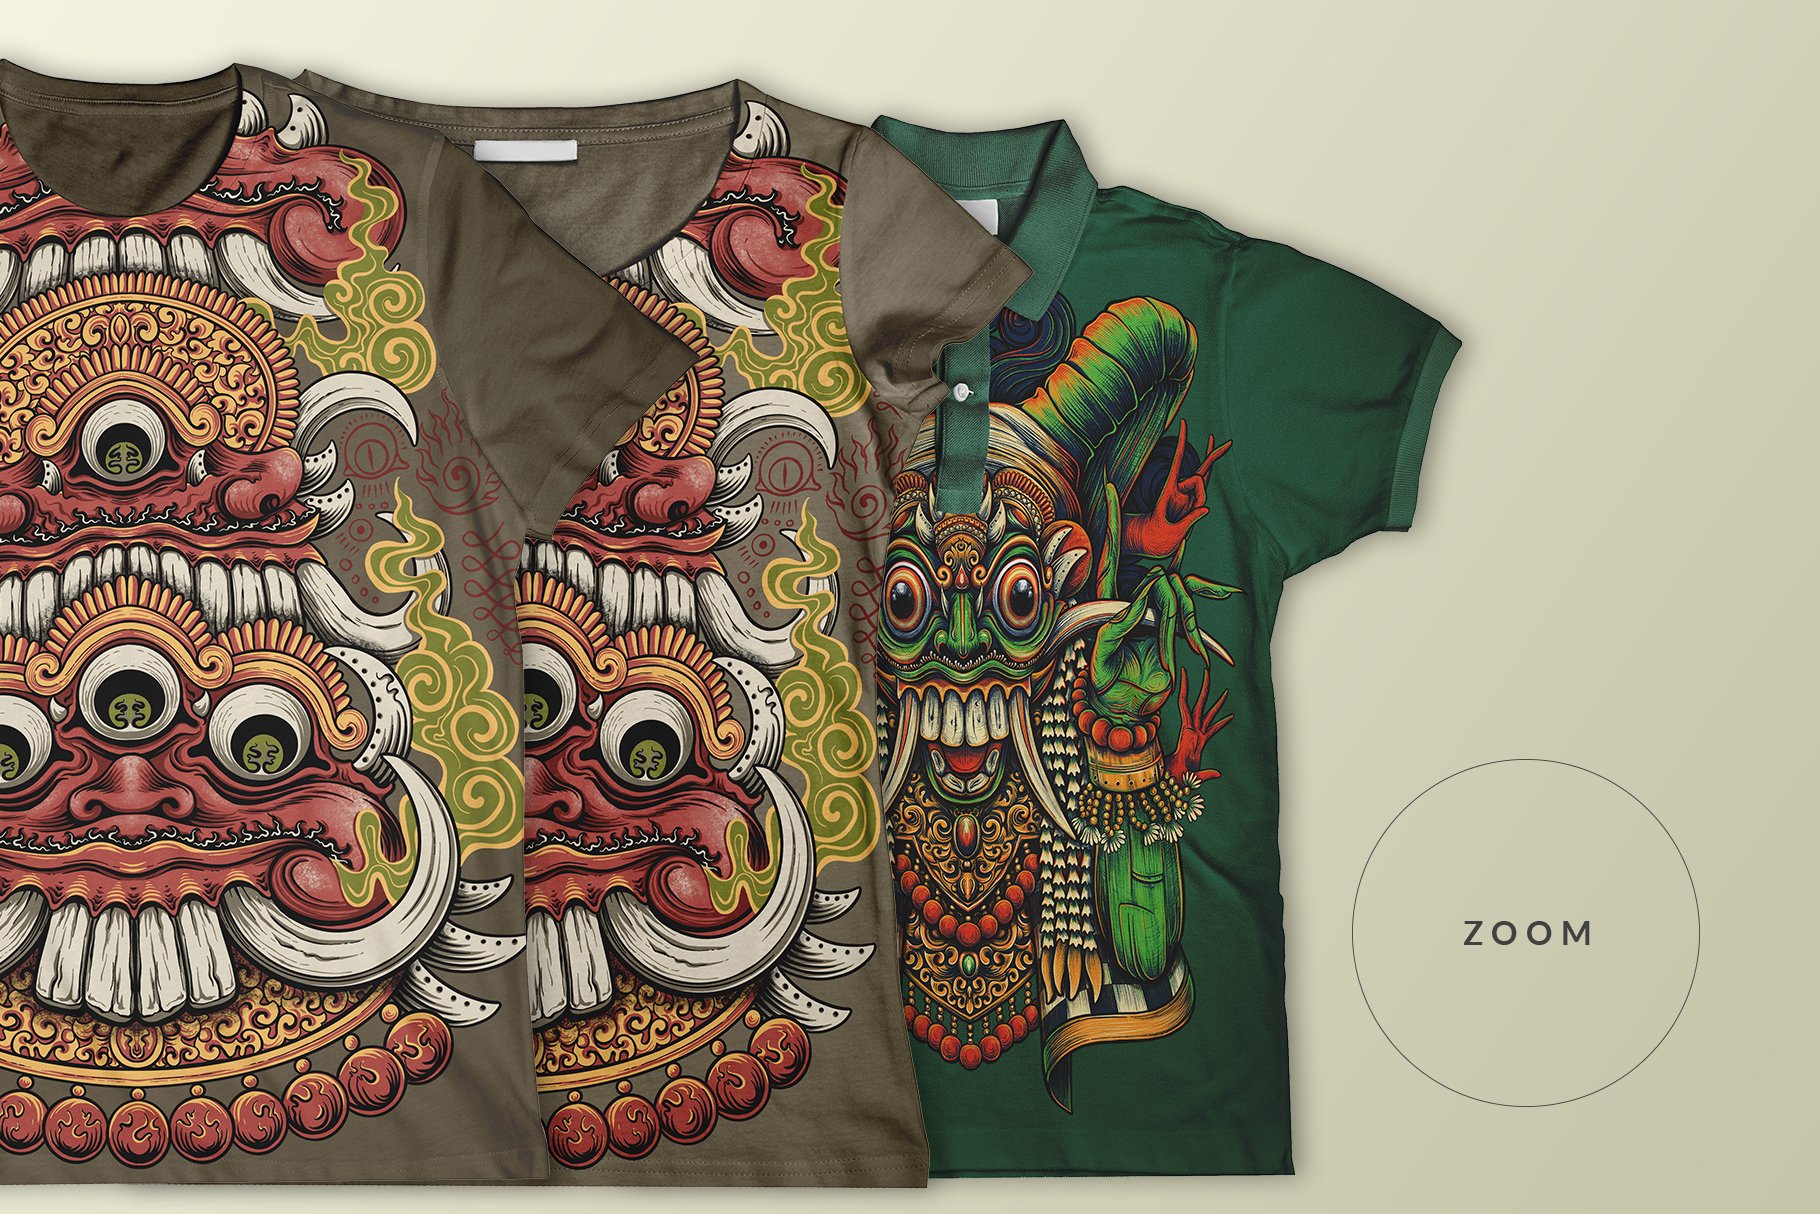 multiple-collar-type-t-shirt-mockup-image-preview-3